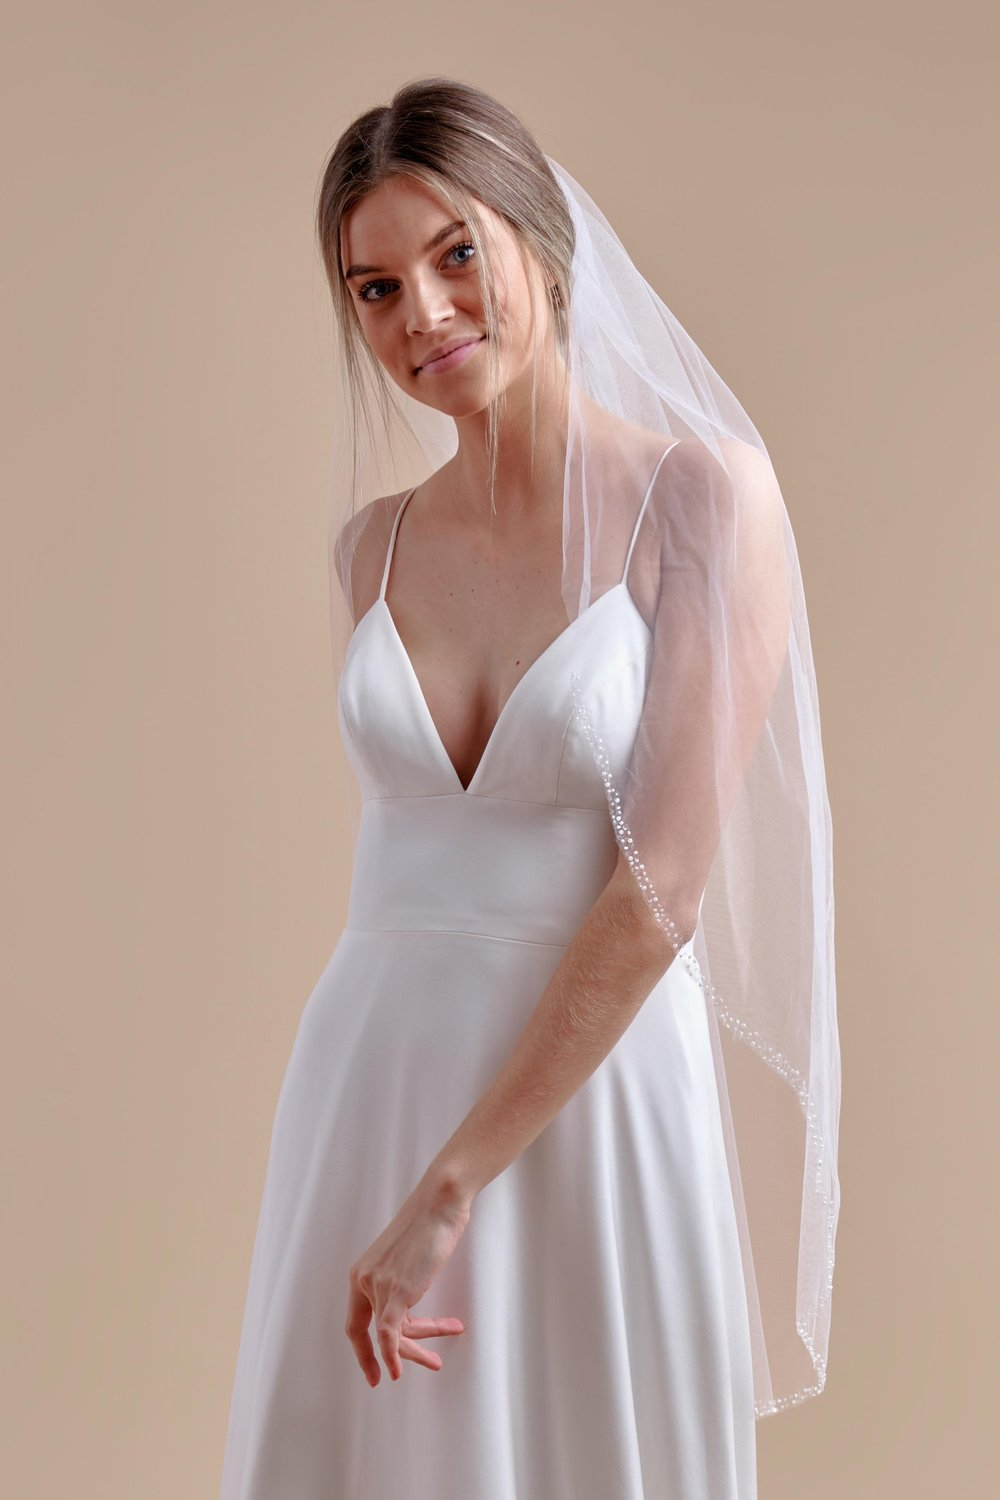 Anomalie, Beaded Veil, Affordable Custom Veil.jpg